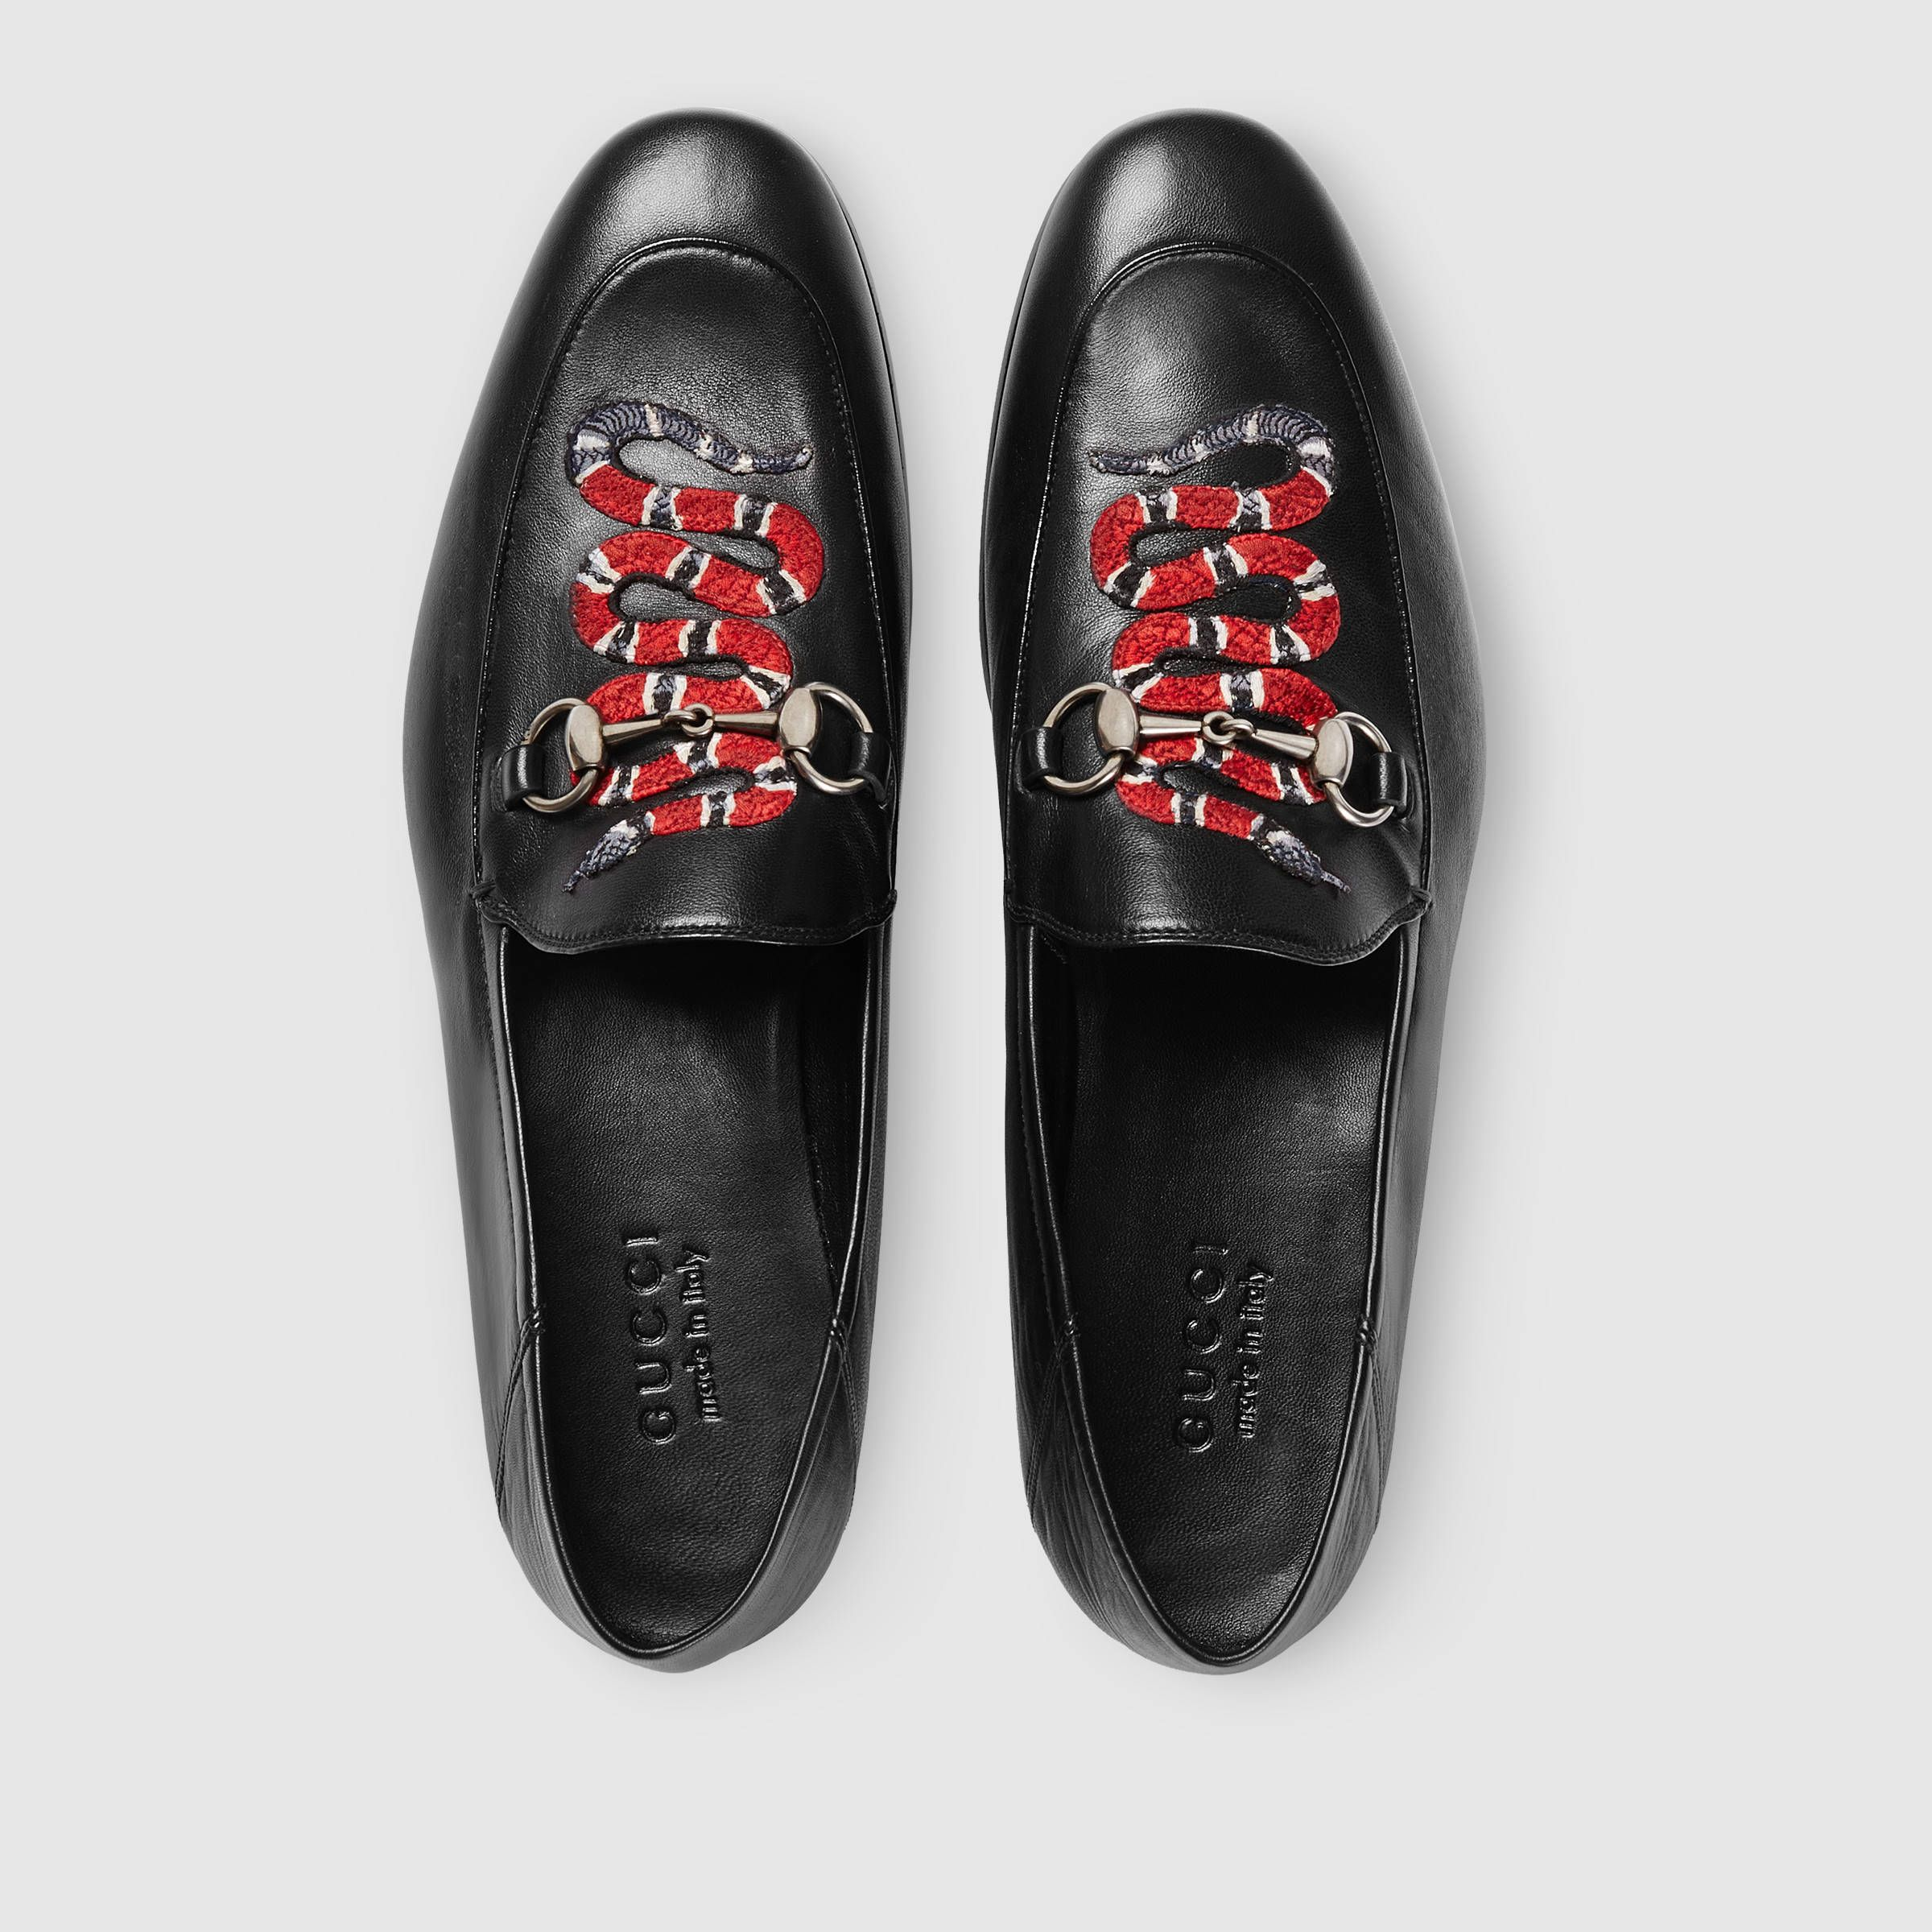 6c590a133 Leather loafer with Kingsnake | BhugaGucci.com | Gucci loafers ...